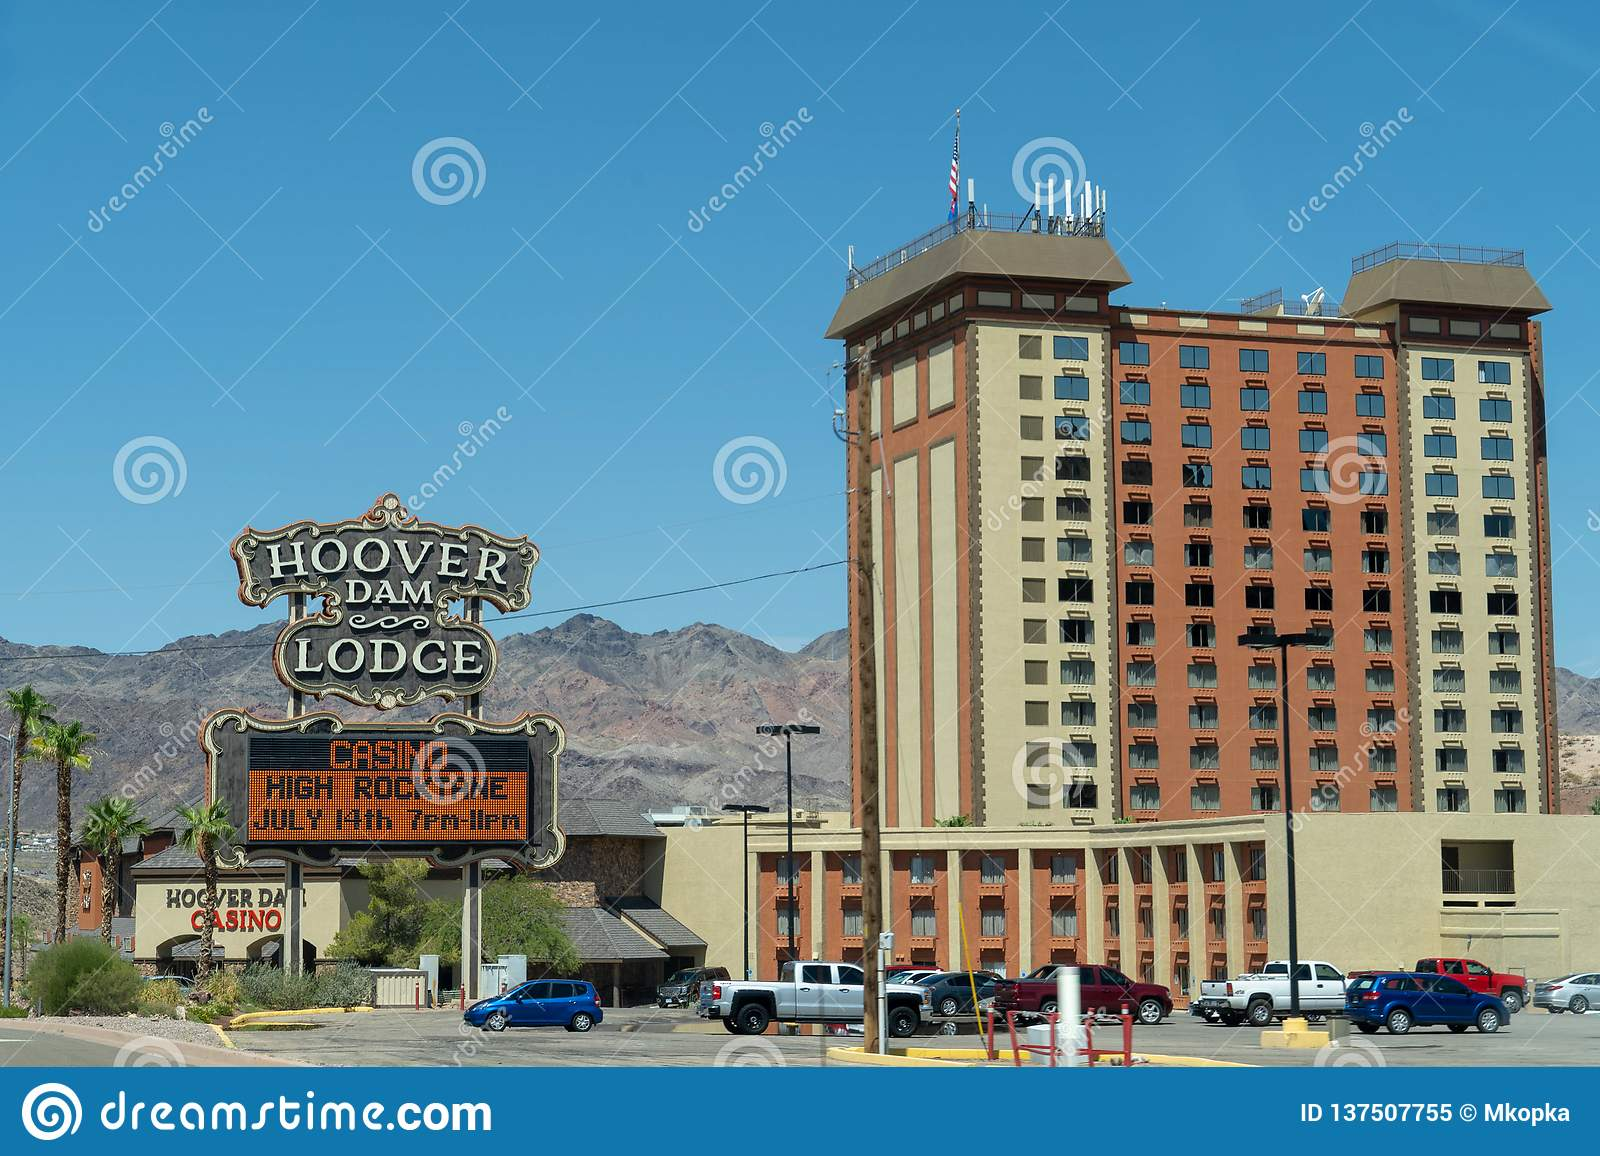 Boulder City, Nevada - The Hoover Dam Lodge, A Hotel And